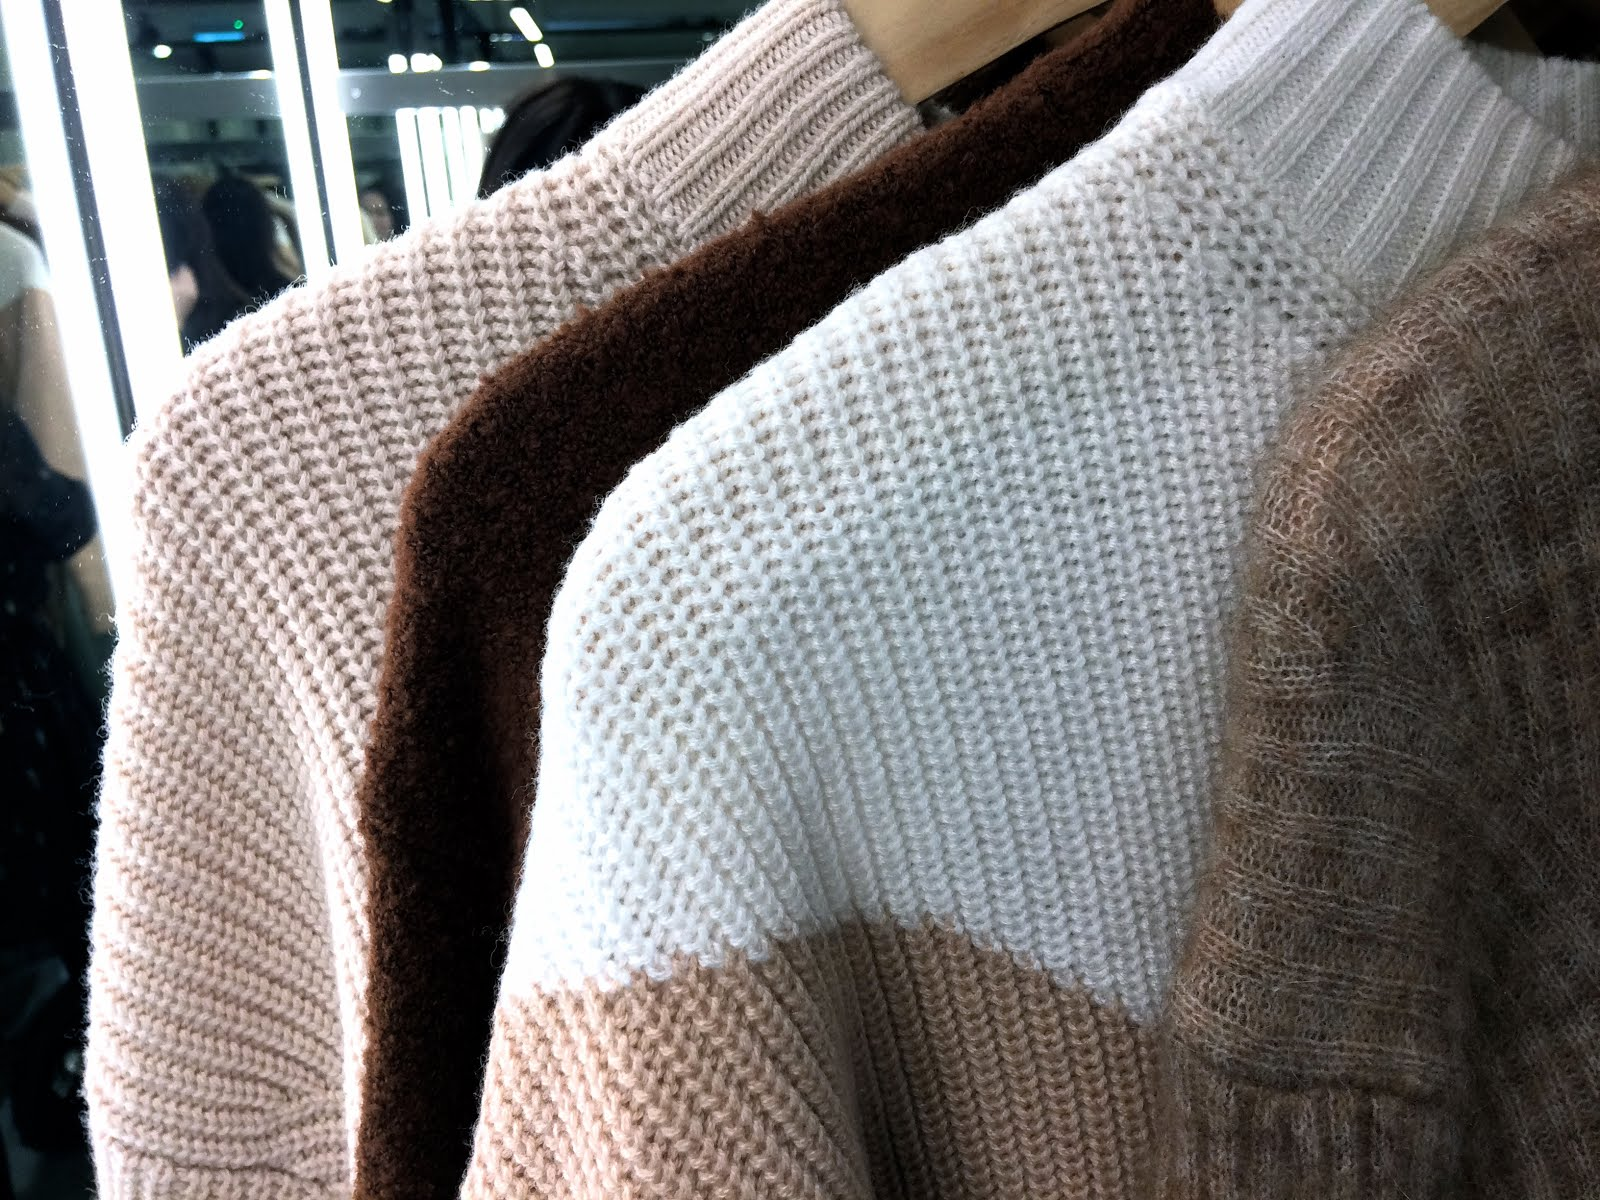 Collection of beige coloured jumpers hanging next to each other